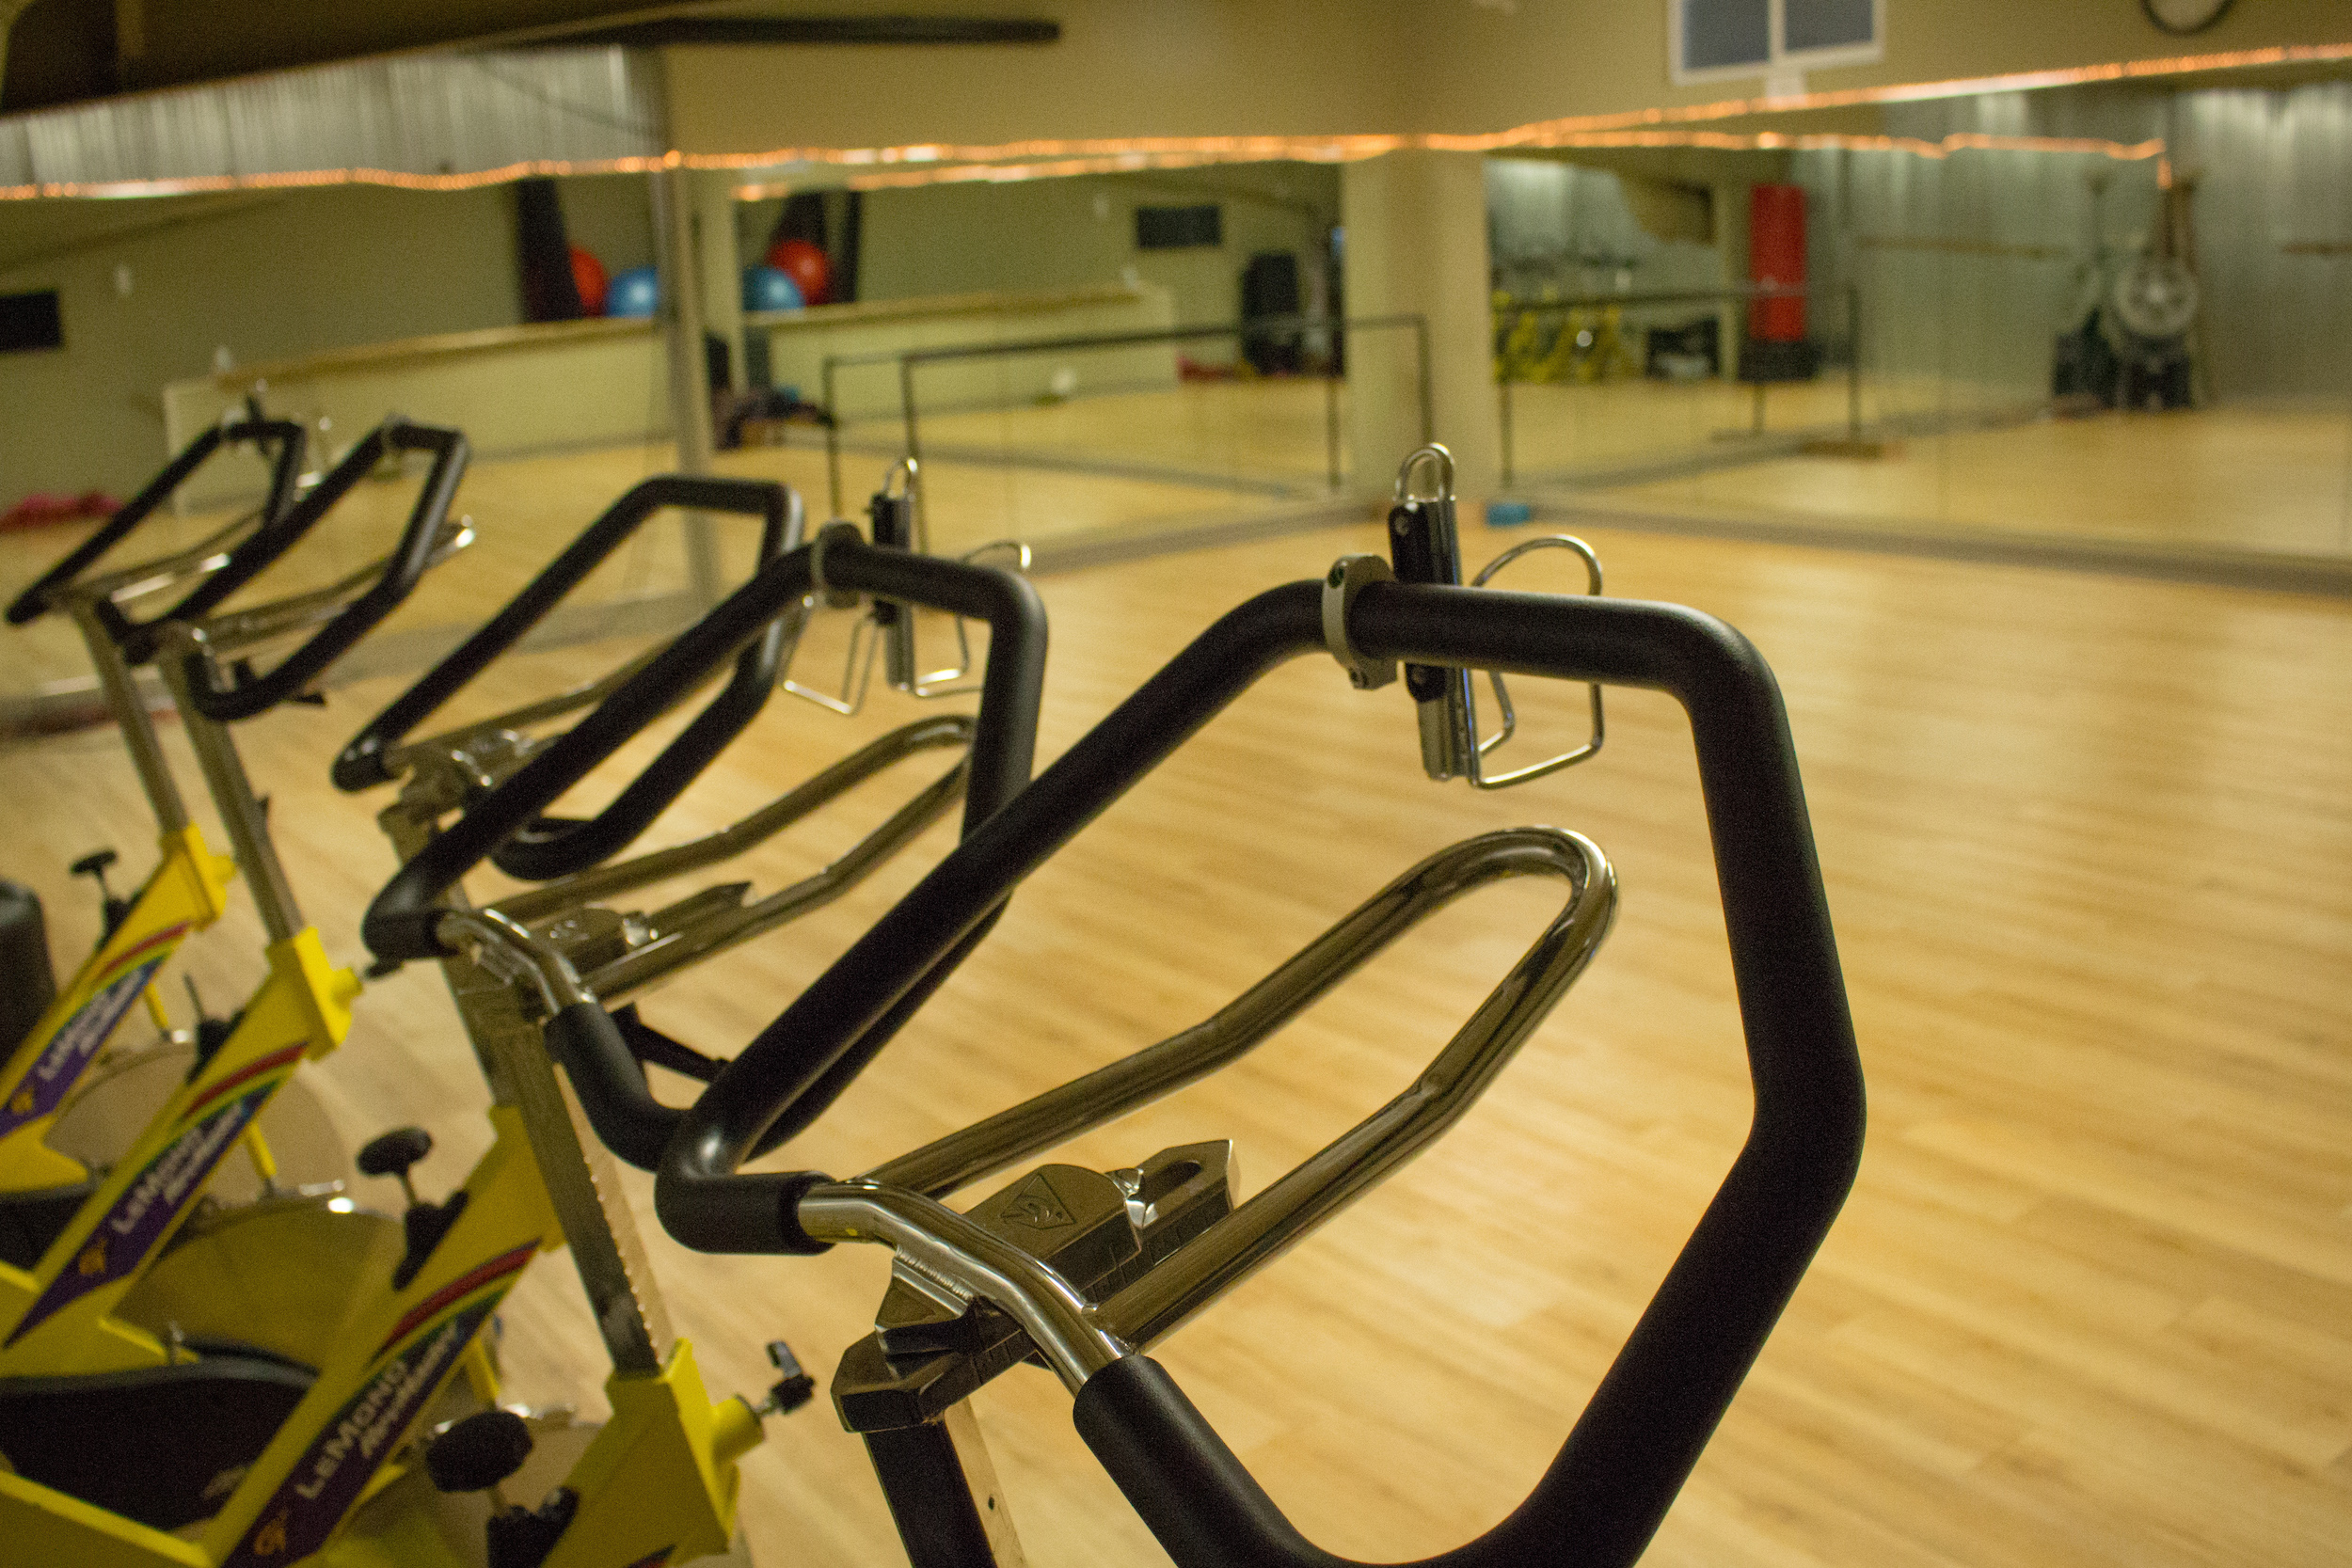 Cycling classes at the Manhattan athletic club and gym